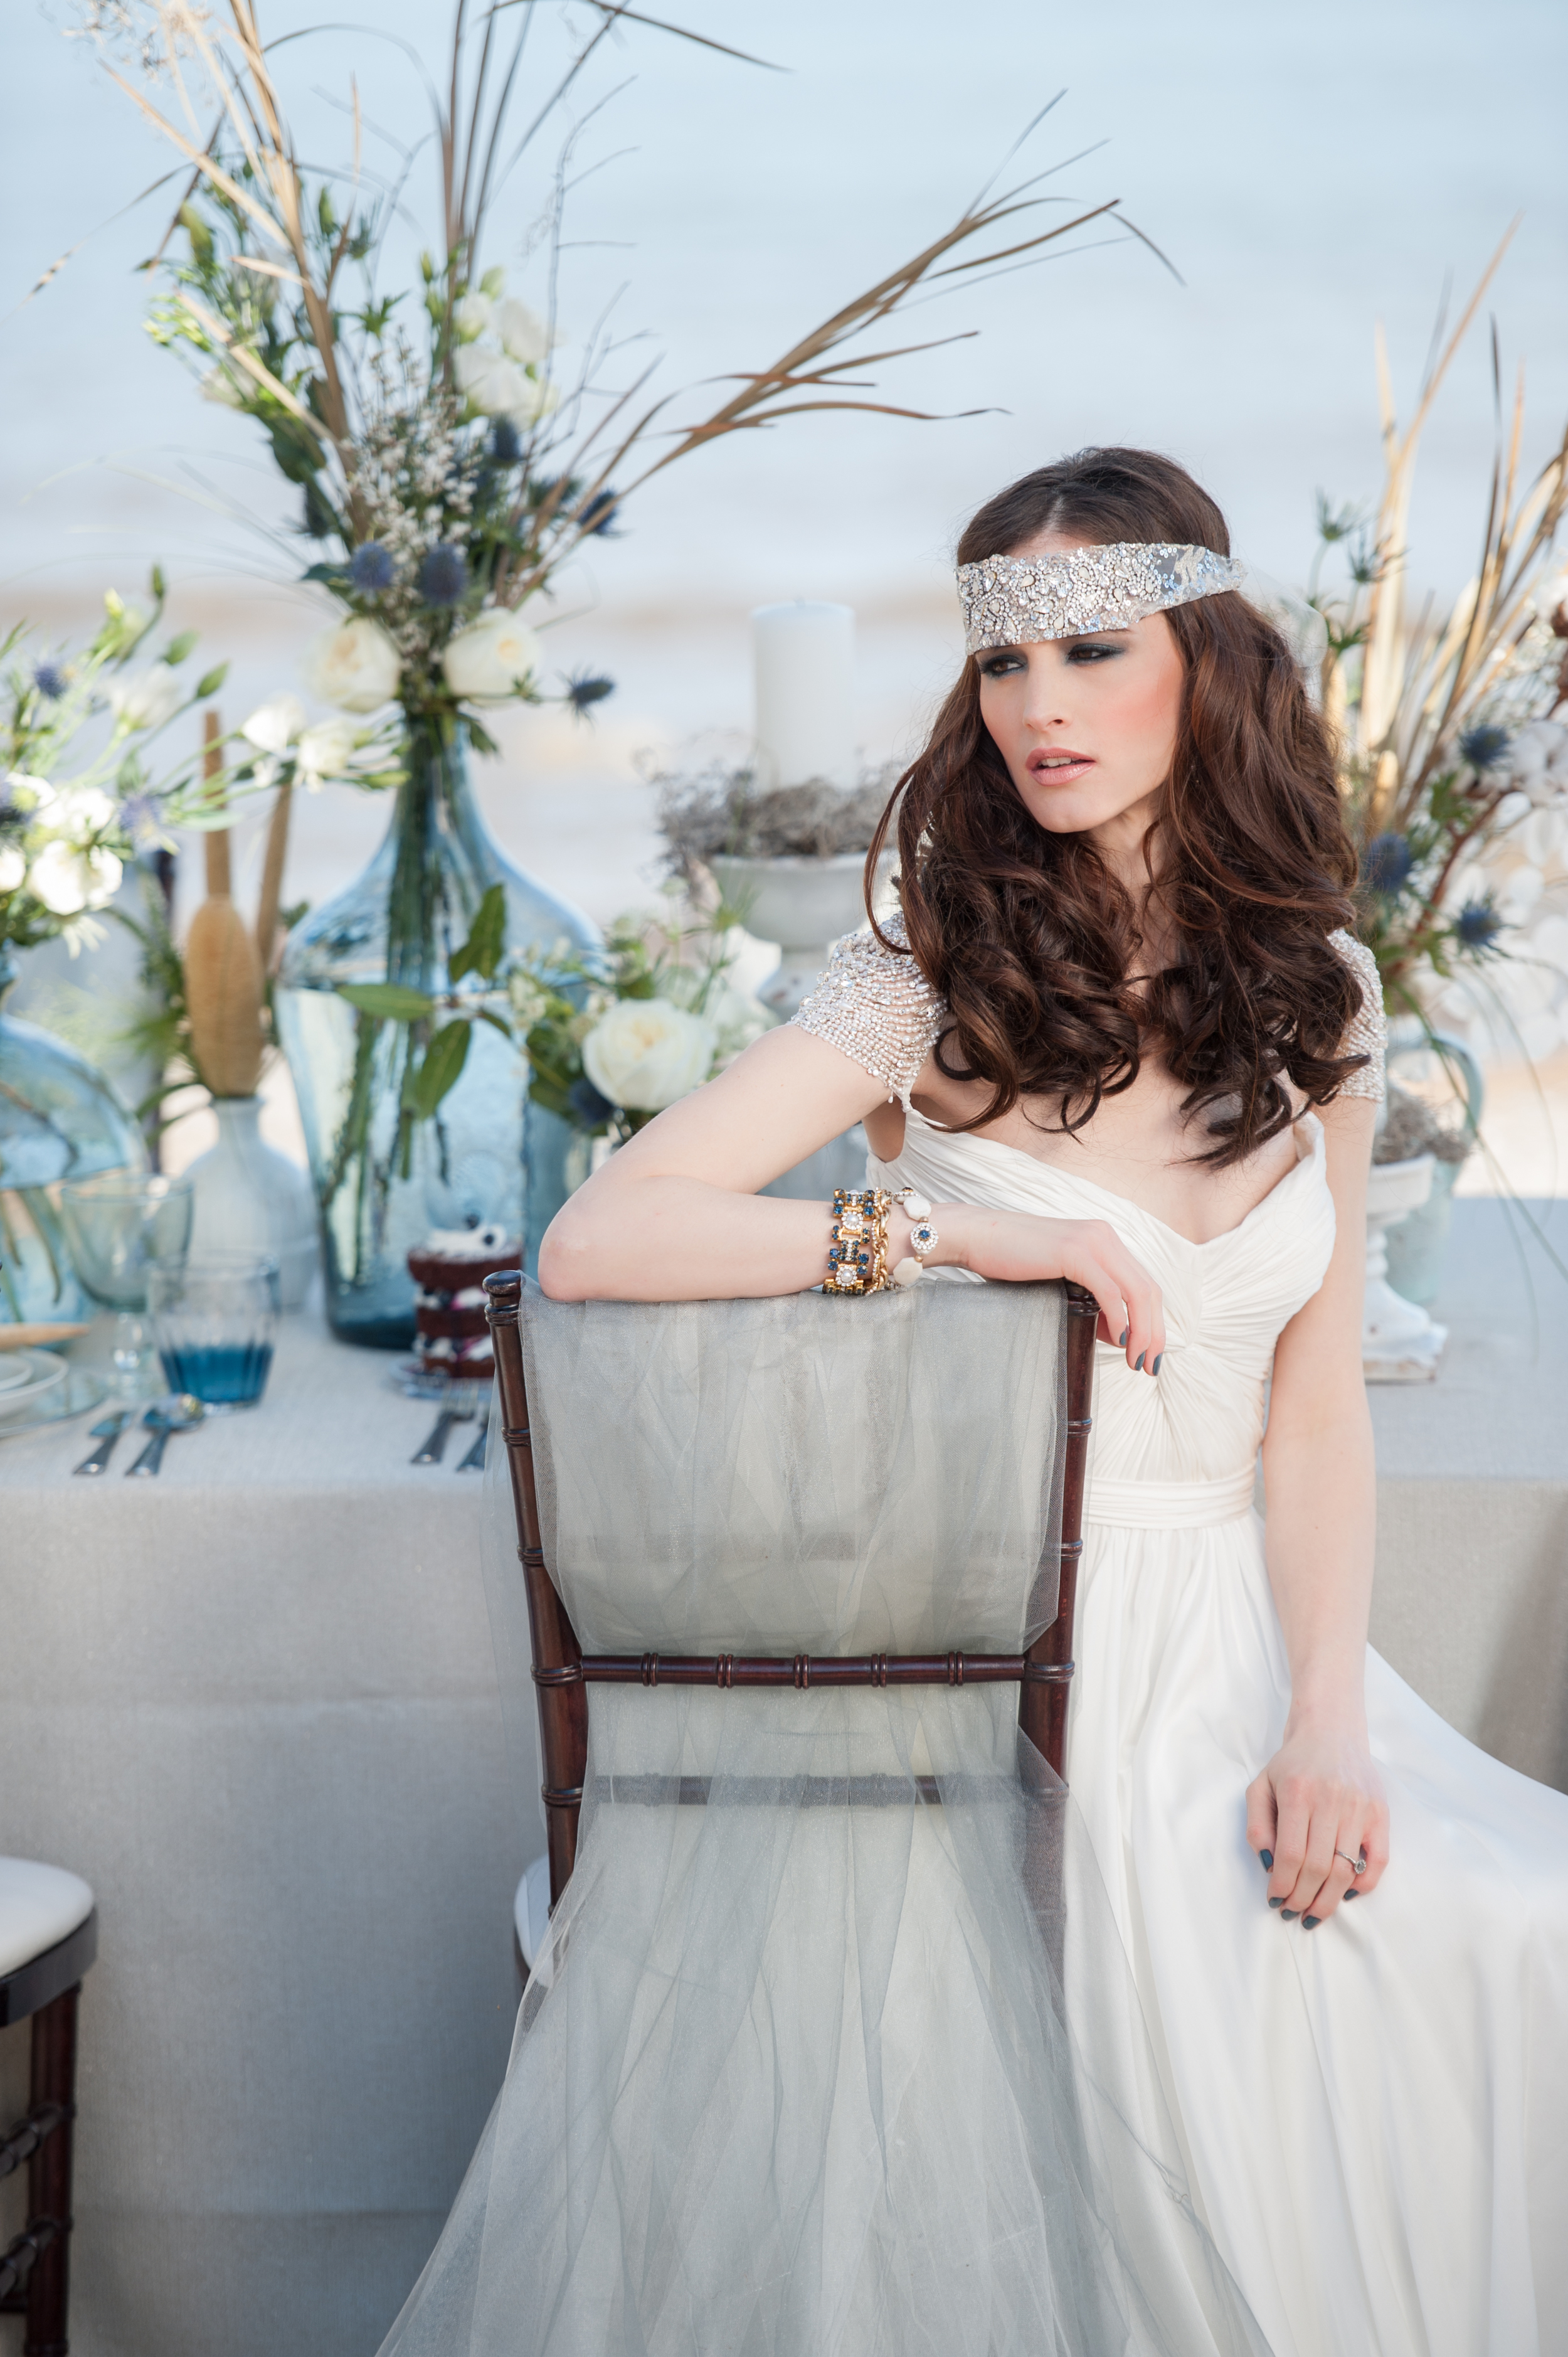 Published in Wedluxe Magazine - Photo Krista Fox